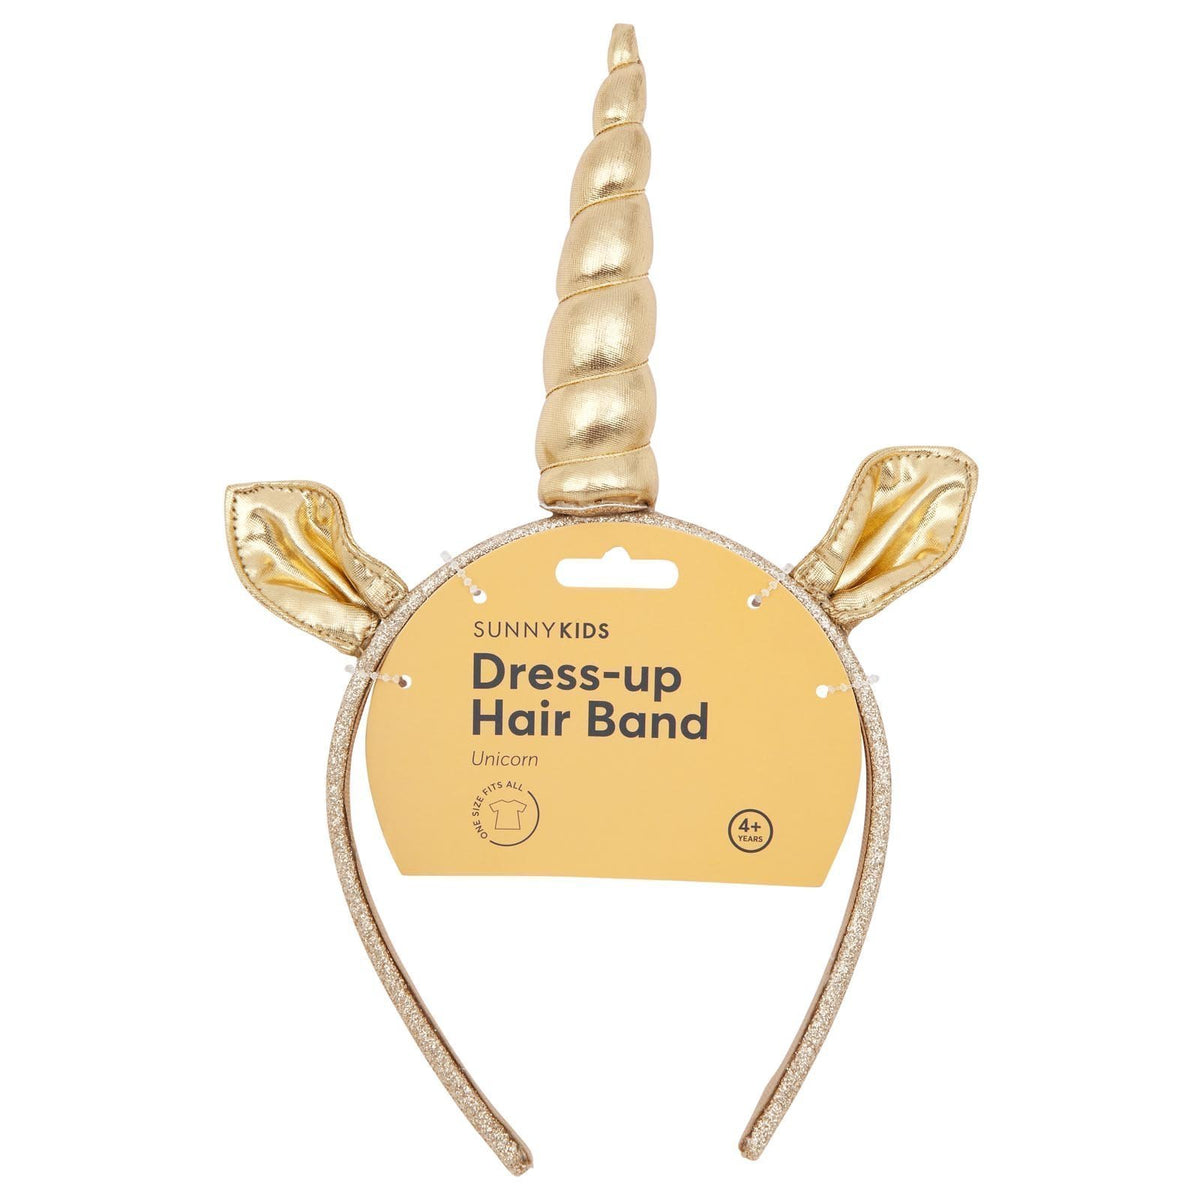 Sunnylife | Dress-up Unicorn Hair Band | Gold | Sunnykids